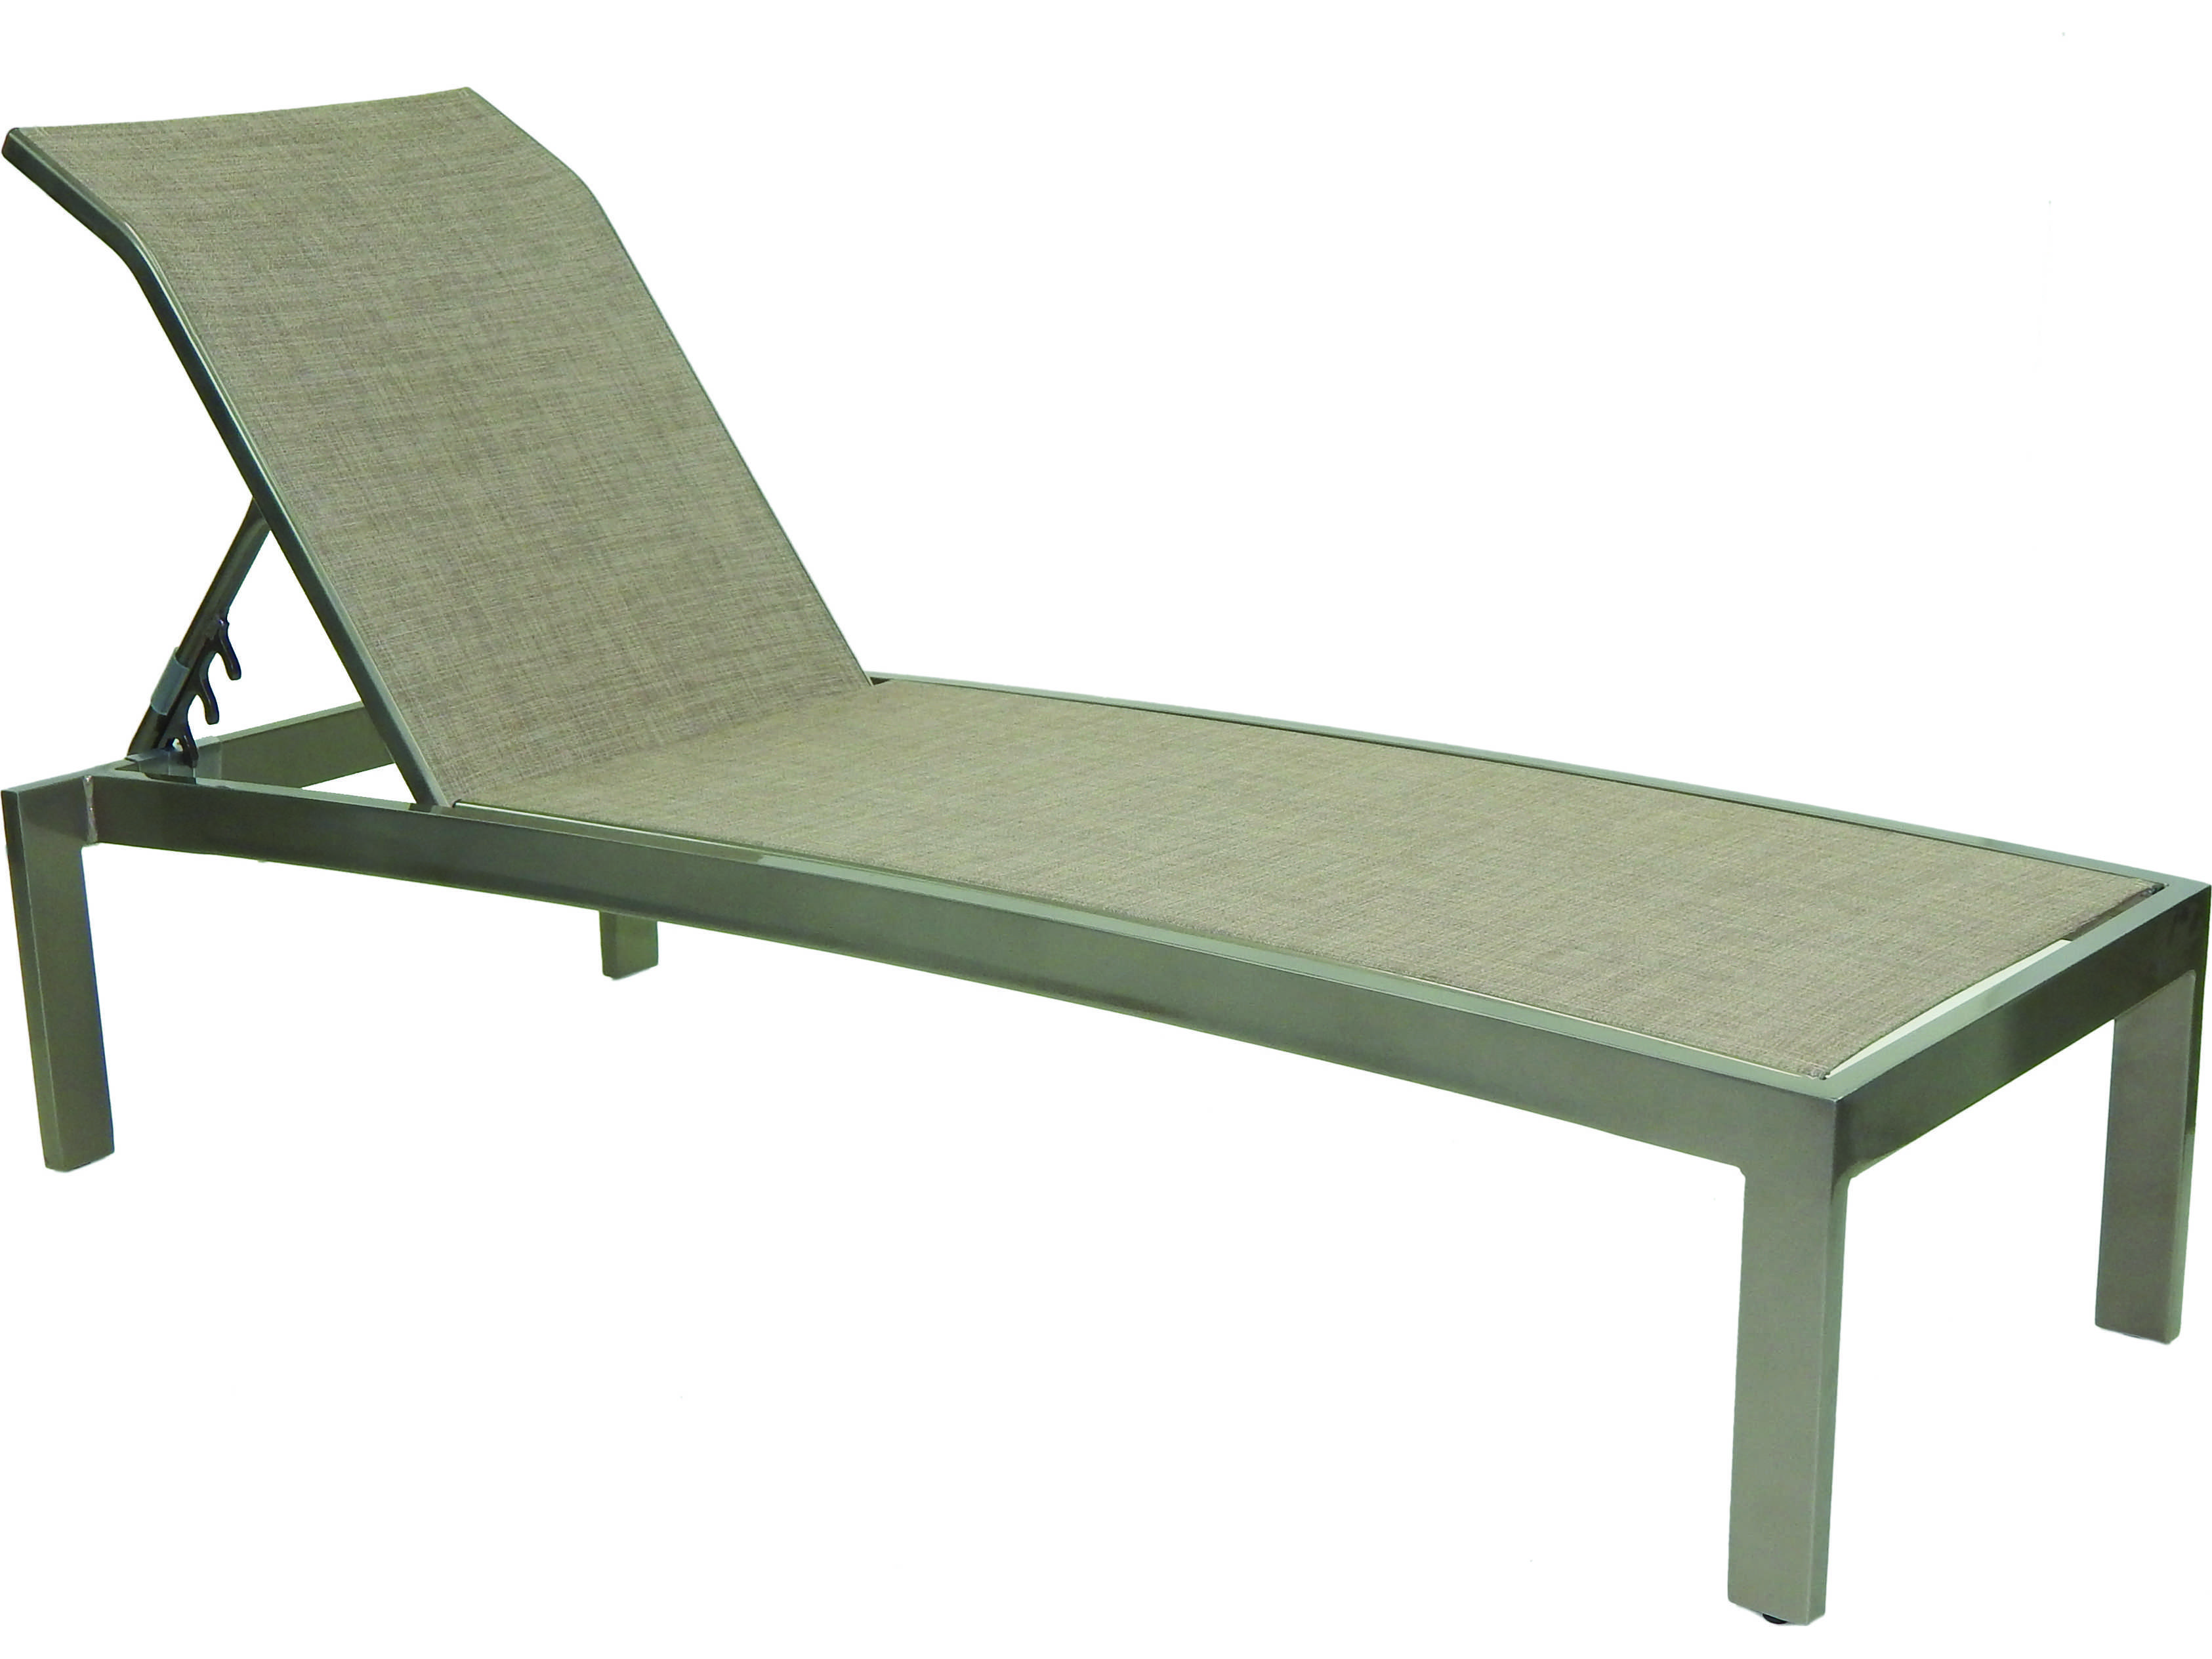 Castelle orion sling cast aluminum adjustable chaise for Cast aluminum chaise lounge